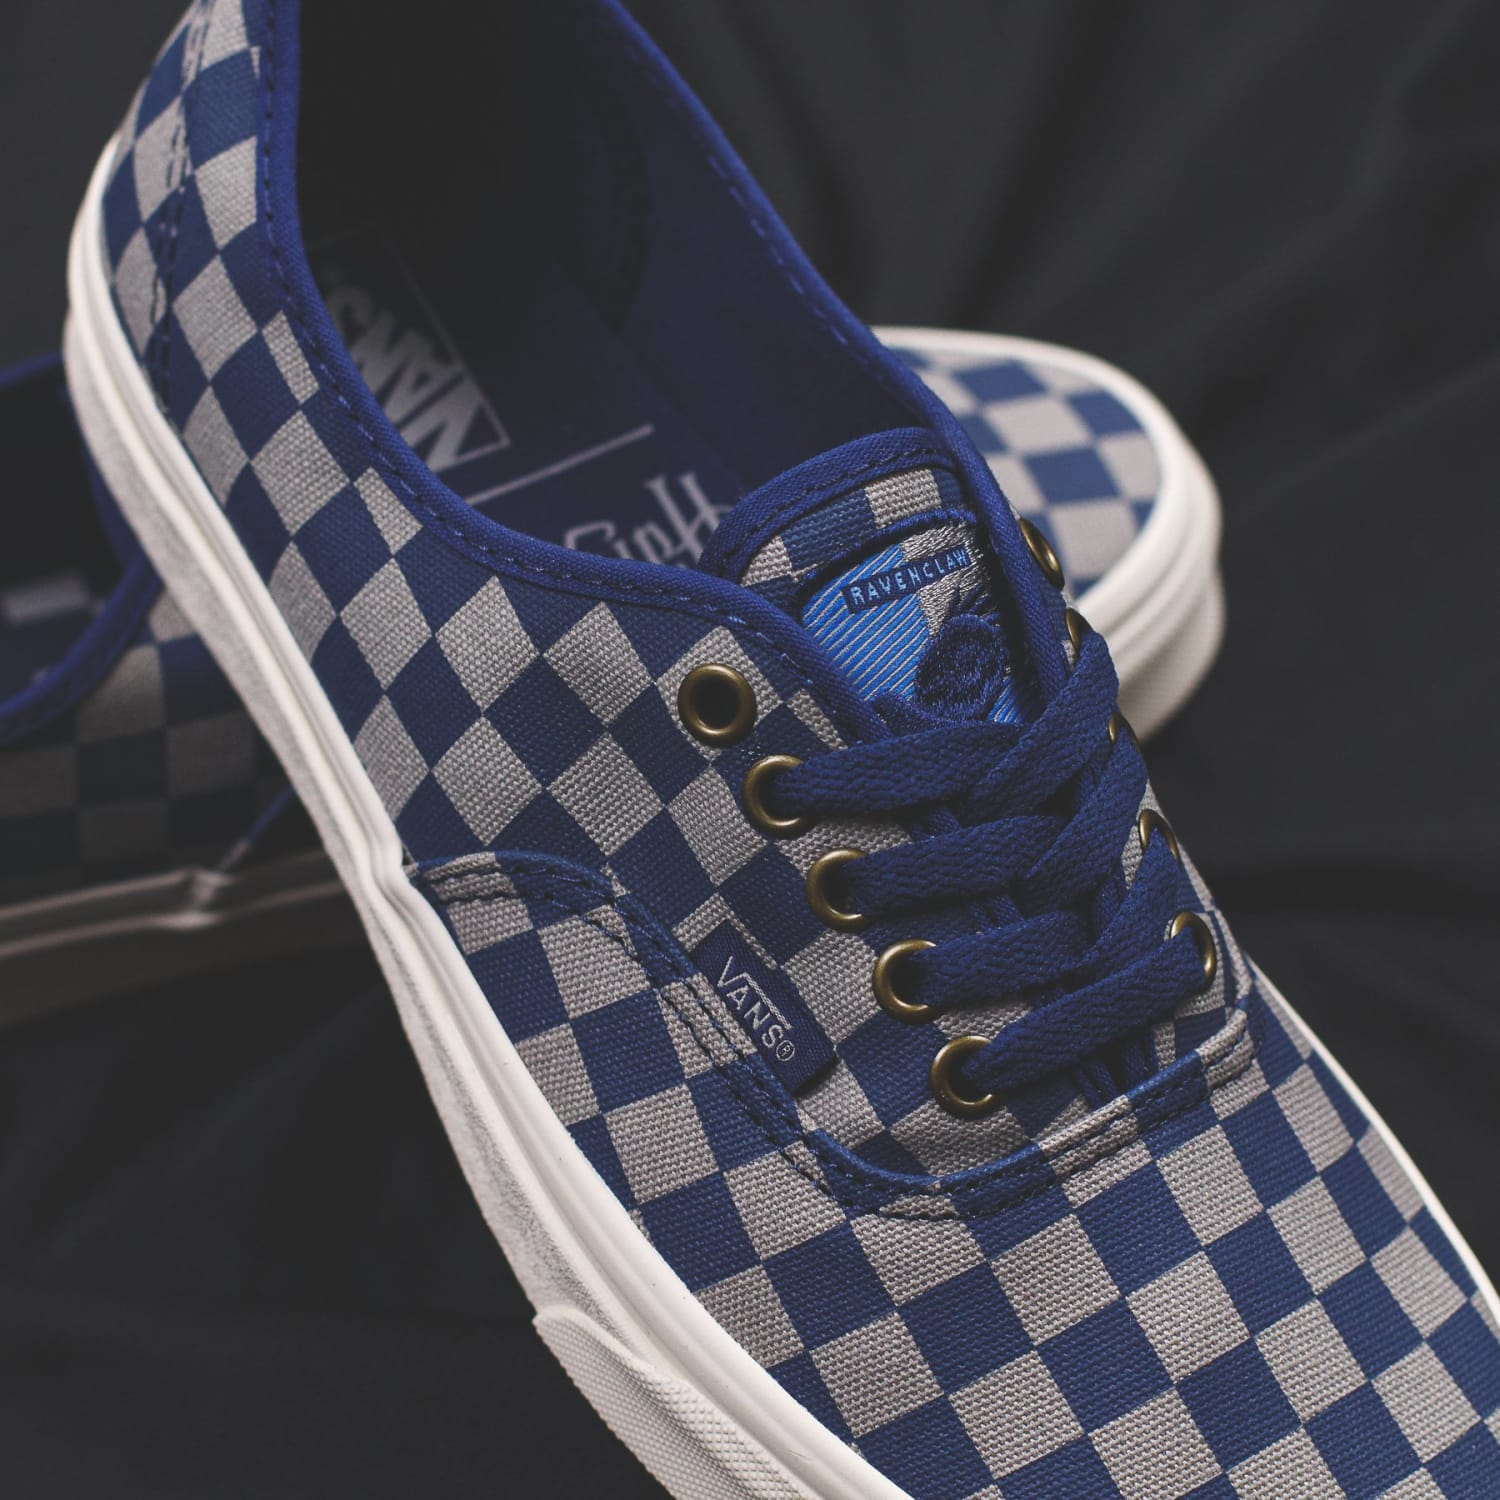 Vans x Harry Potter - Footwear and Apparel Collection